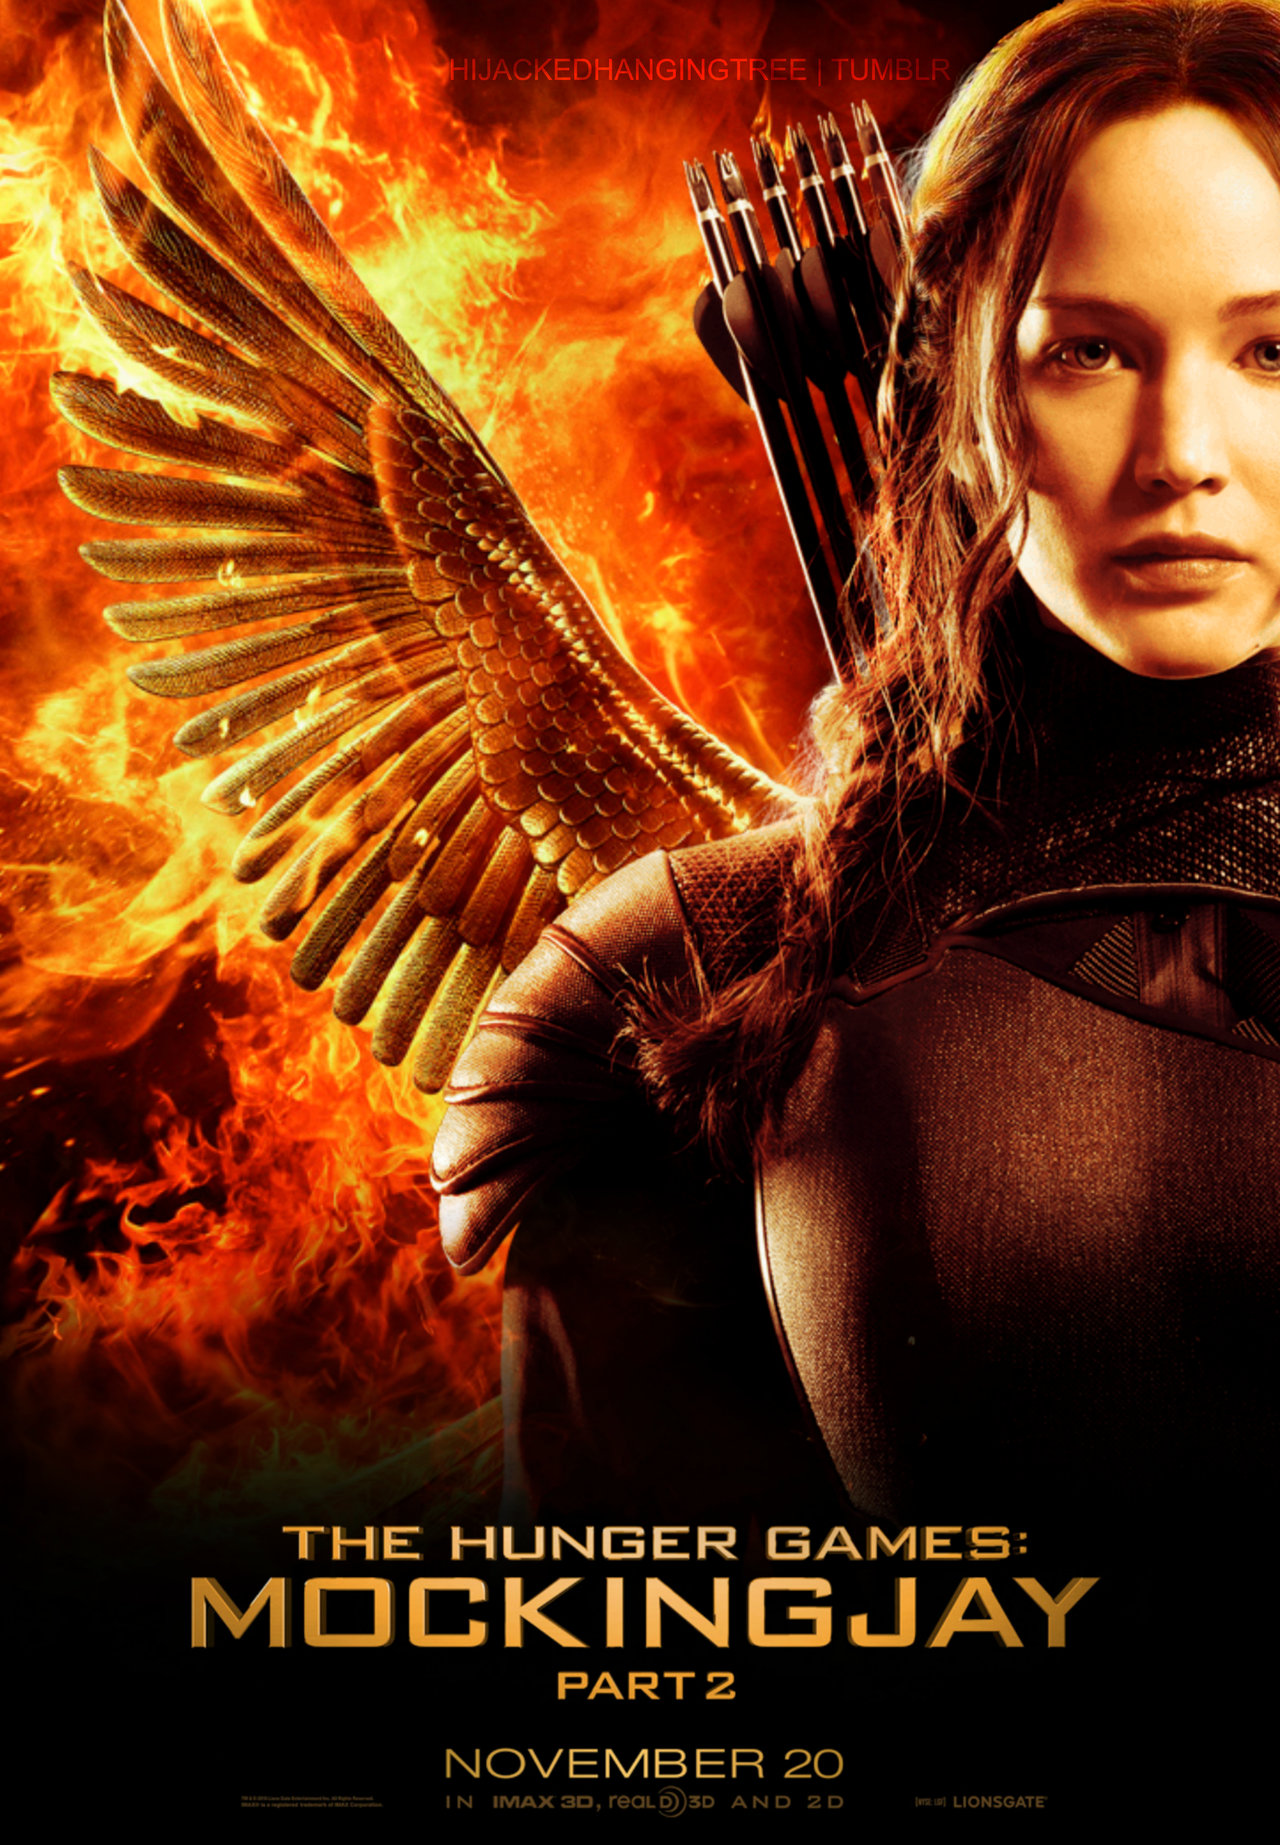 New Movie Promotion The Hunger Games Mockingjay Part 2